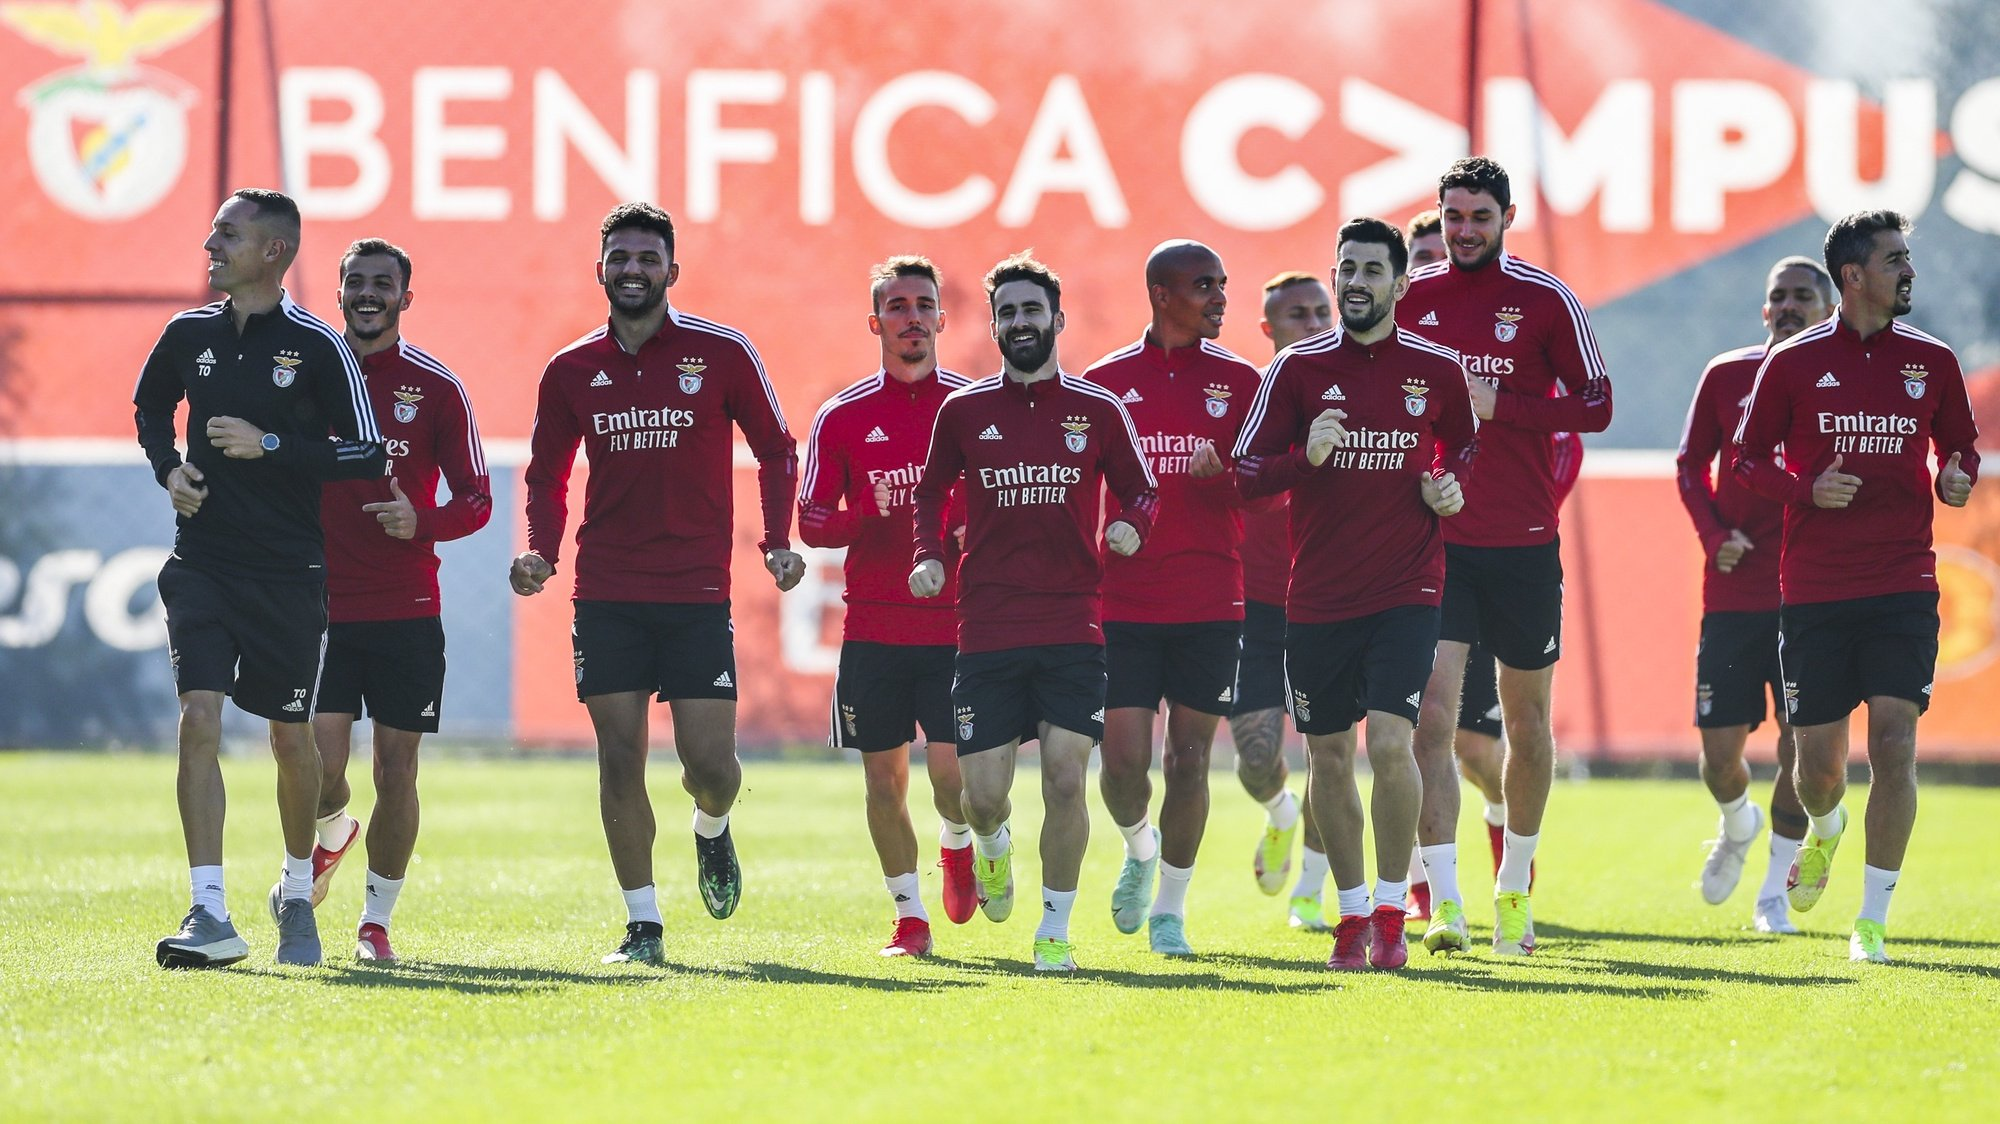 Benfica's players attend their team's training session at Benfica's training camp in Seixal, Portugal, 19 October 2021. Benfica will face Bayern Munich in their UEFA Champion League group E soccer match on 20th October 2021. ANTONIO COTRIM/LUSA